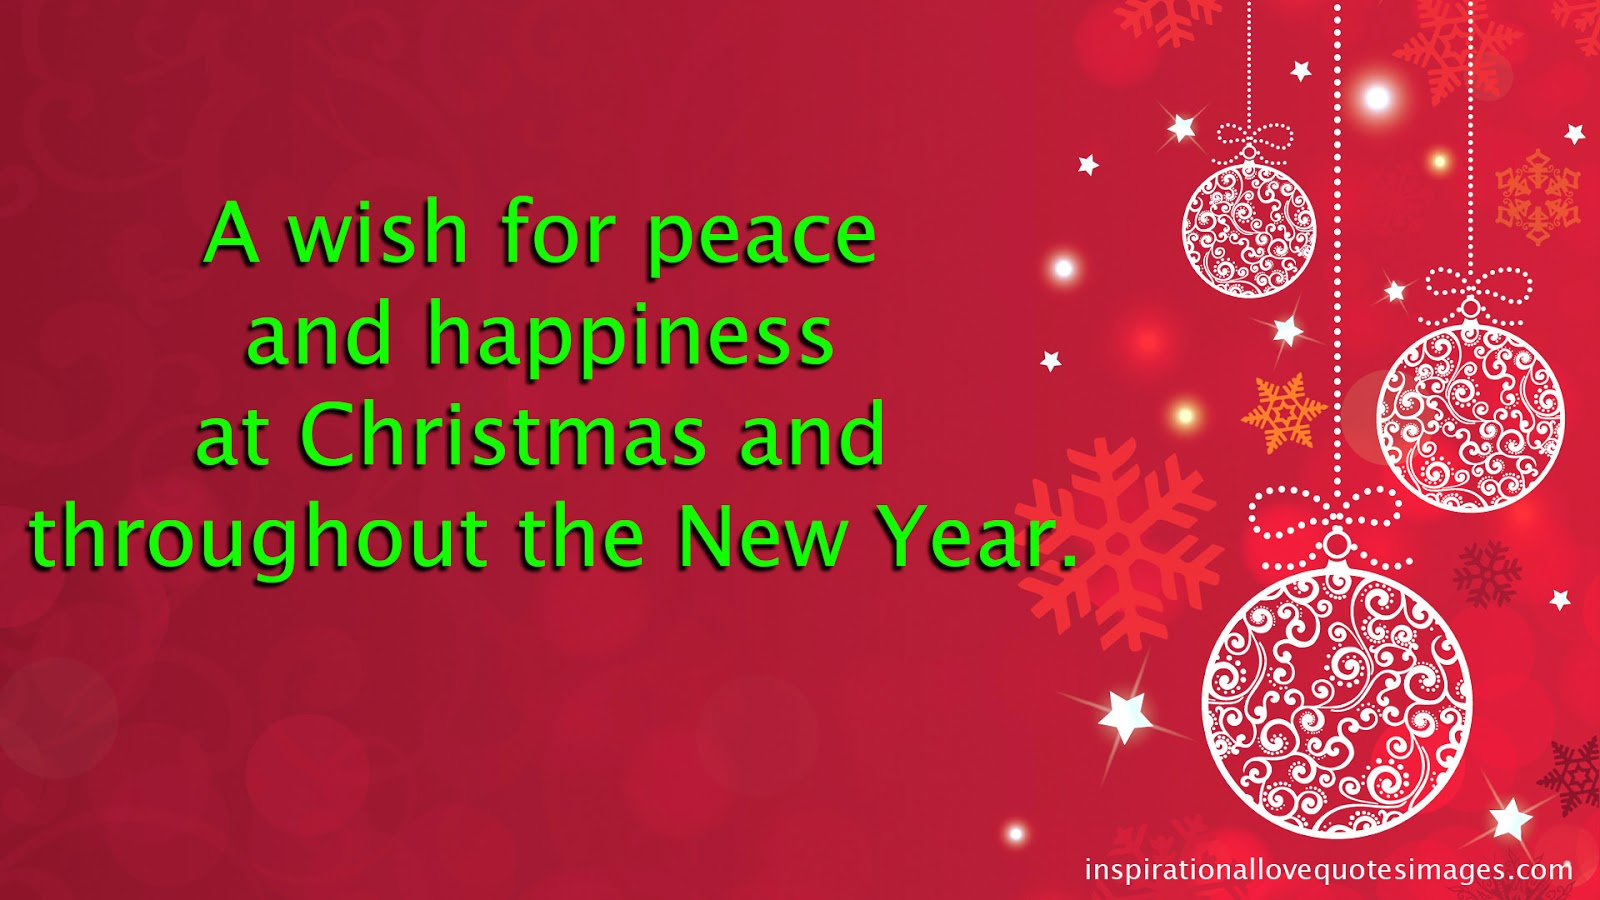 Top Christmas Greetings Image Collections Greetings Card Design Simple